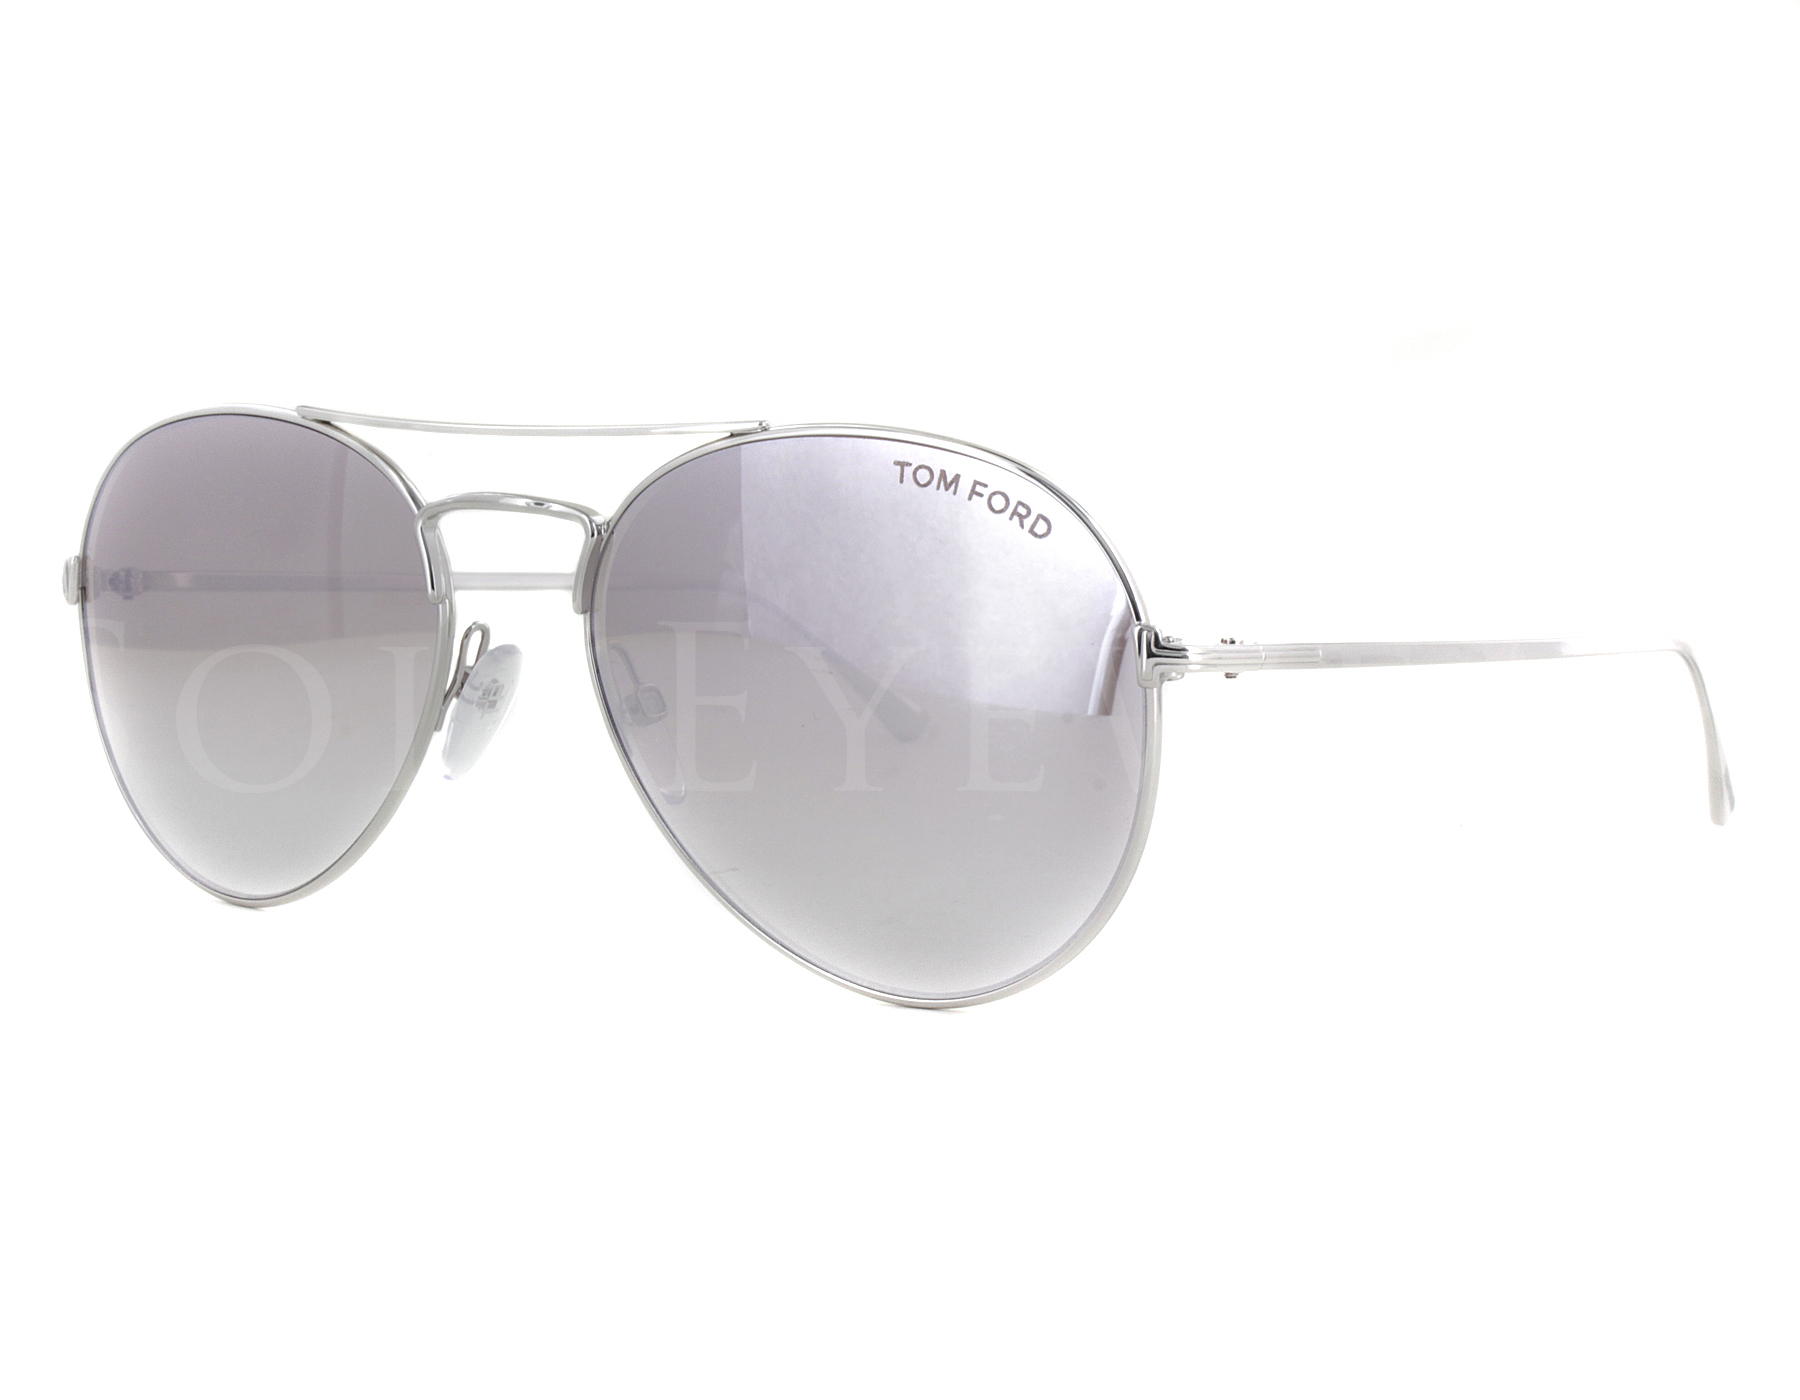 1f216af56d2b Details about NEW Tom Ford FT0551 18Z Ace Rhodium Shiny Silver   Violet  Sunglasses (NO CASE)